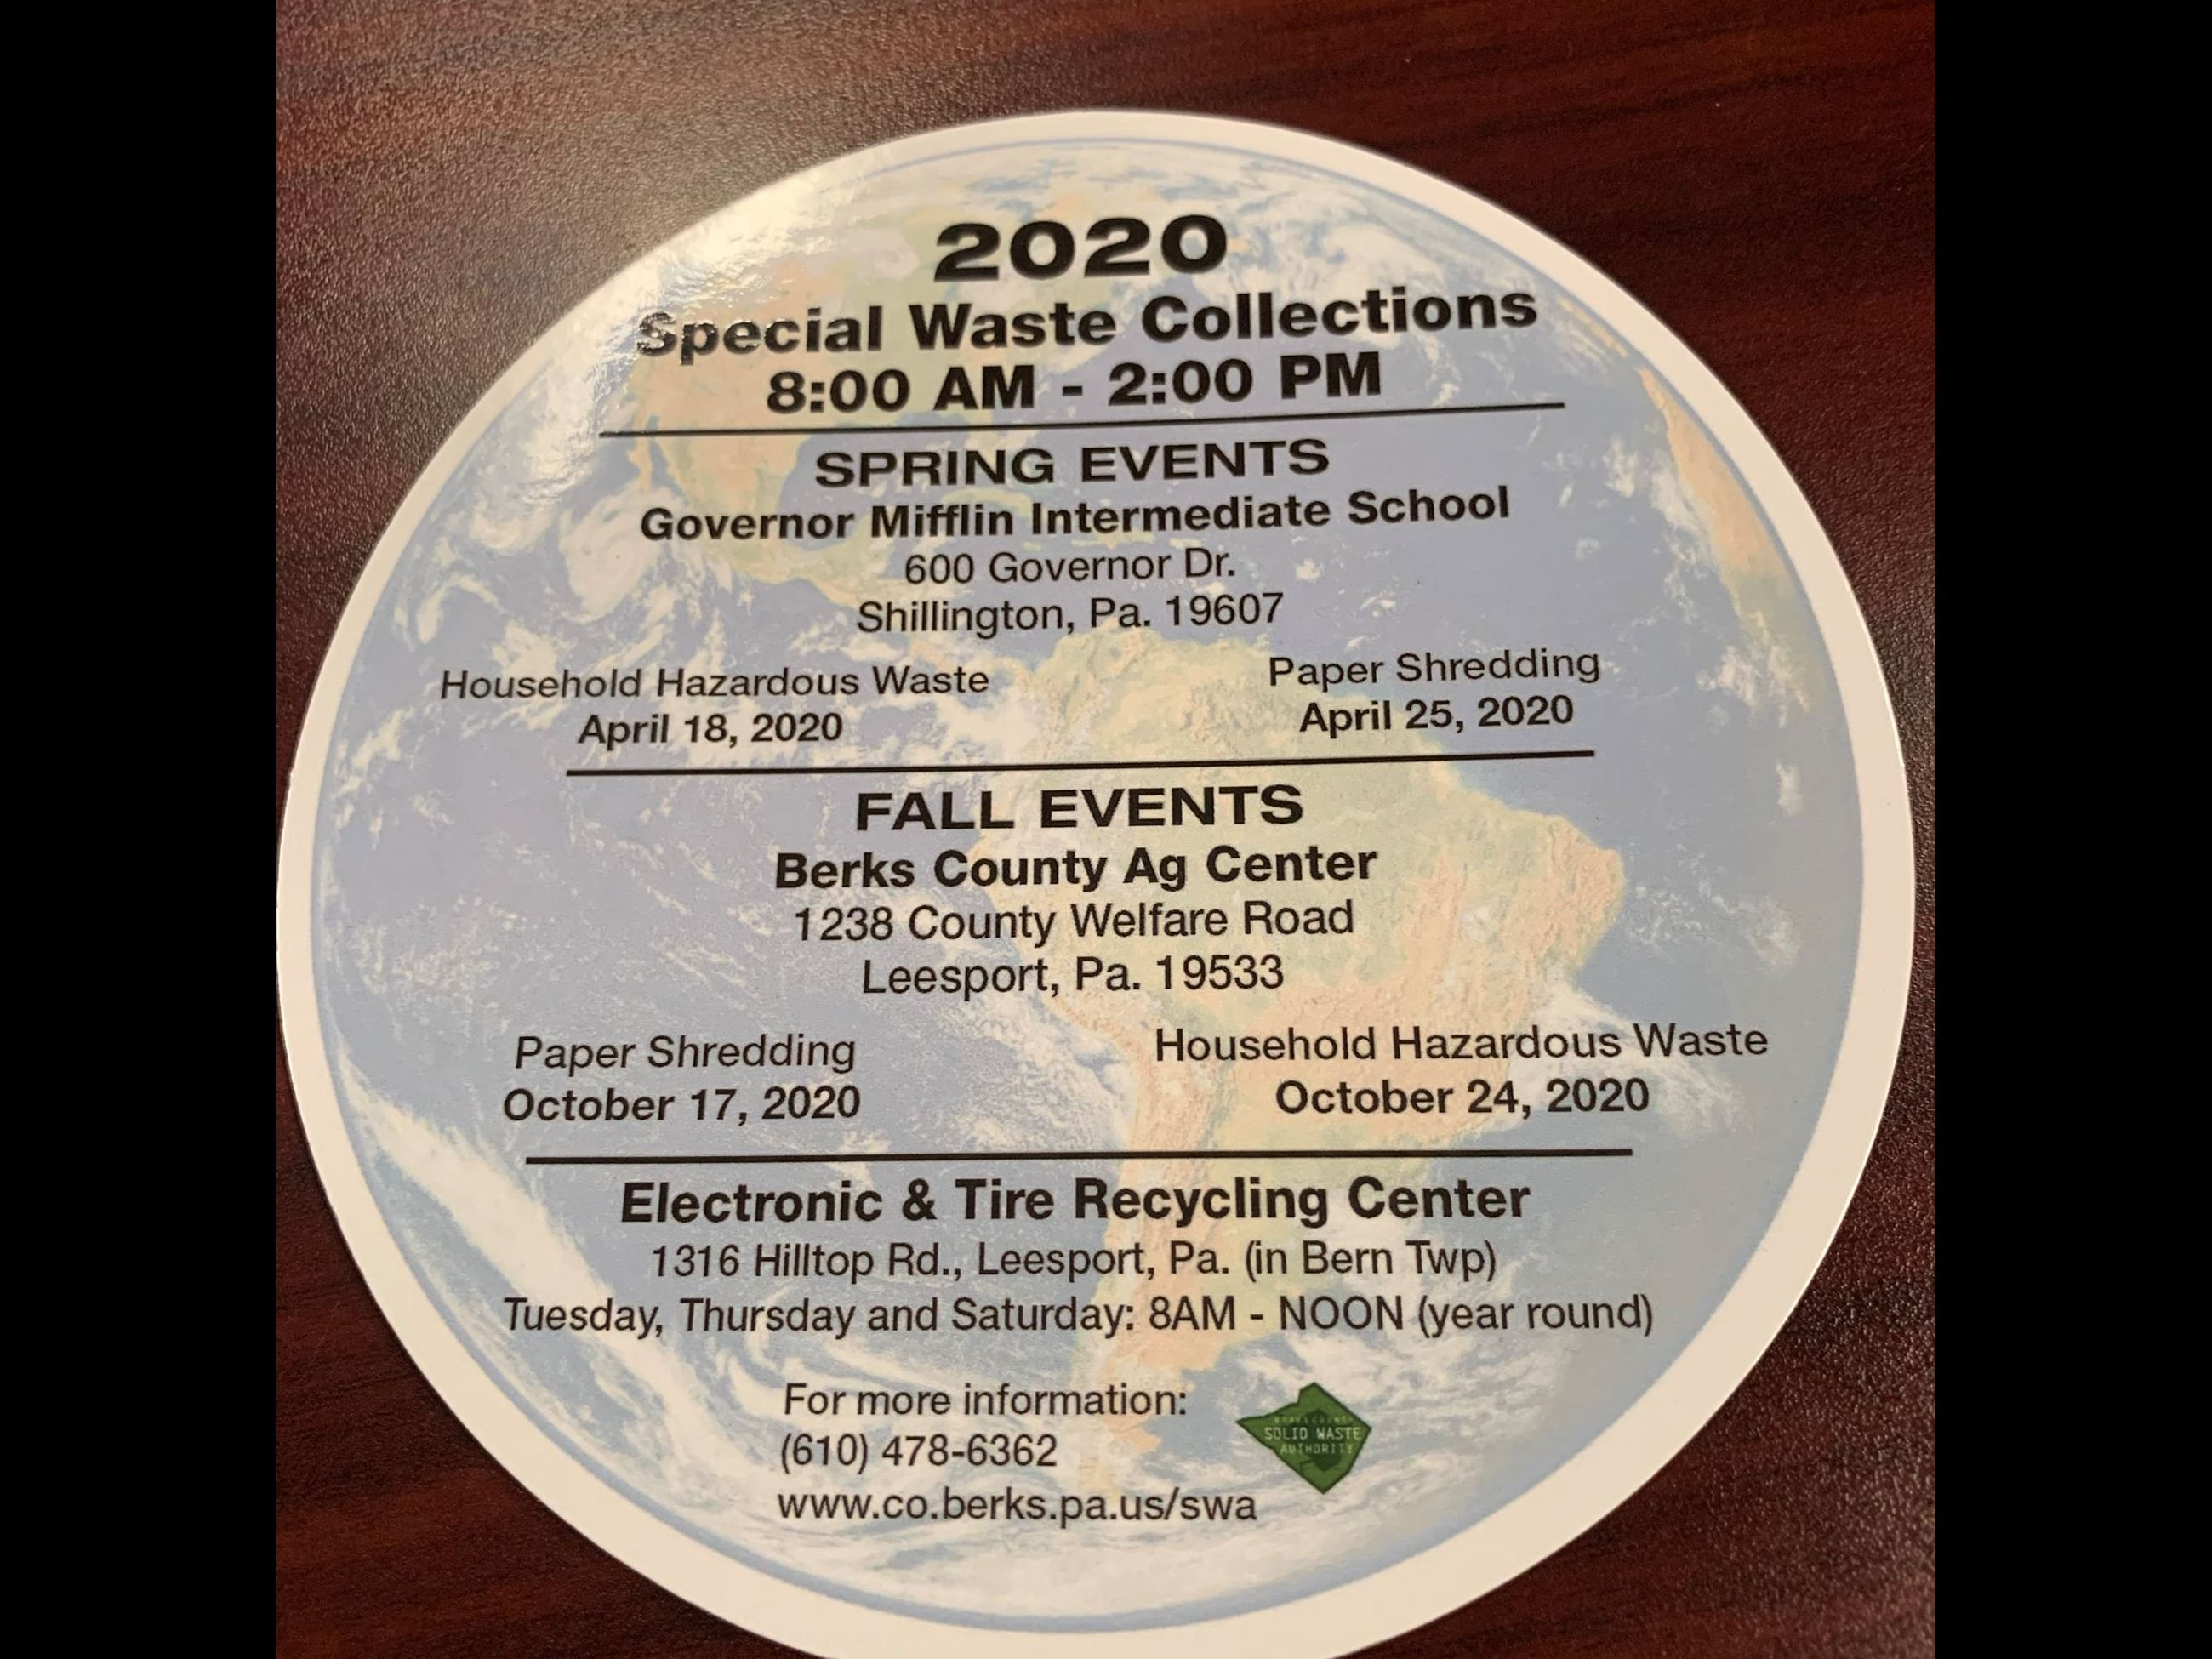 2020 Special Waste Collection Magnet